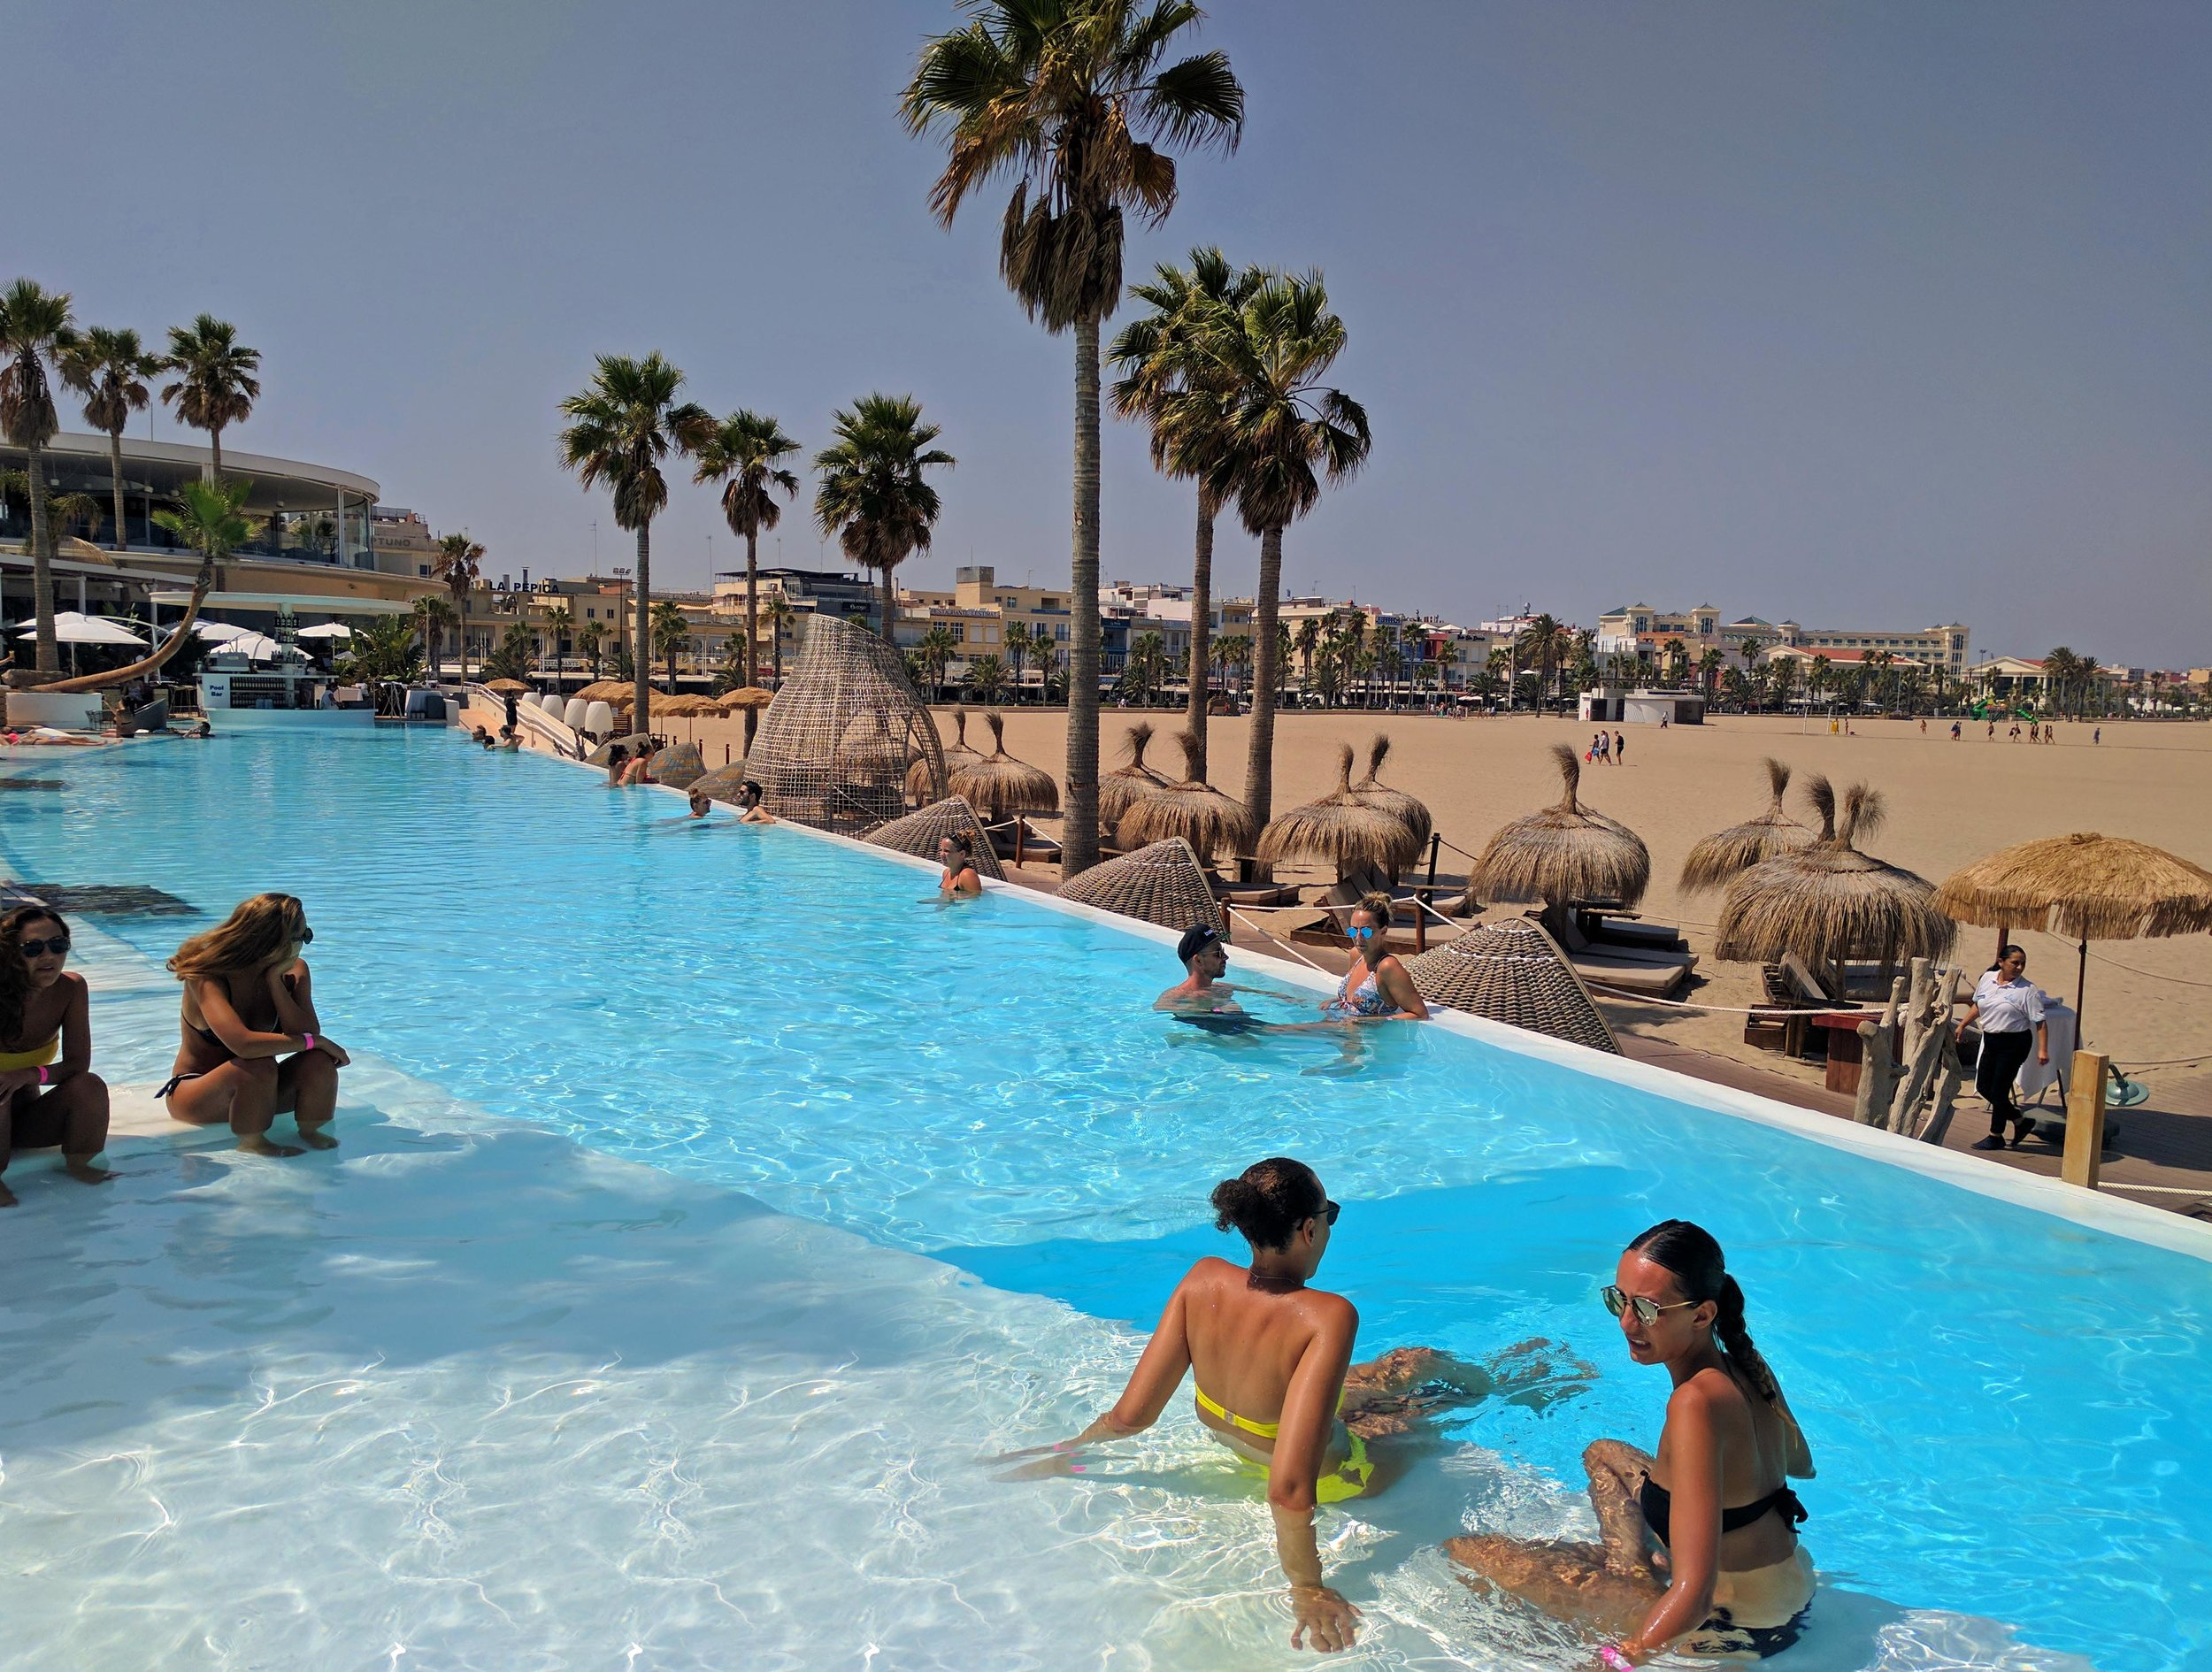 A nice day off at the Marina Beach Club in Valencia